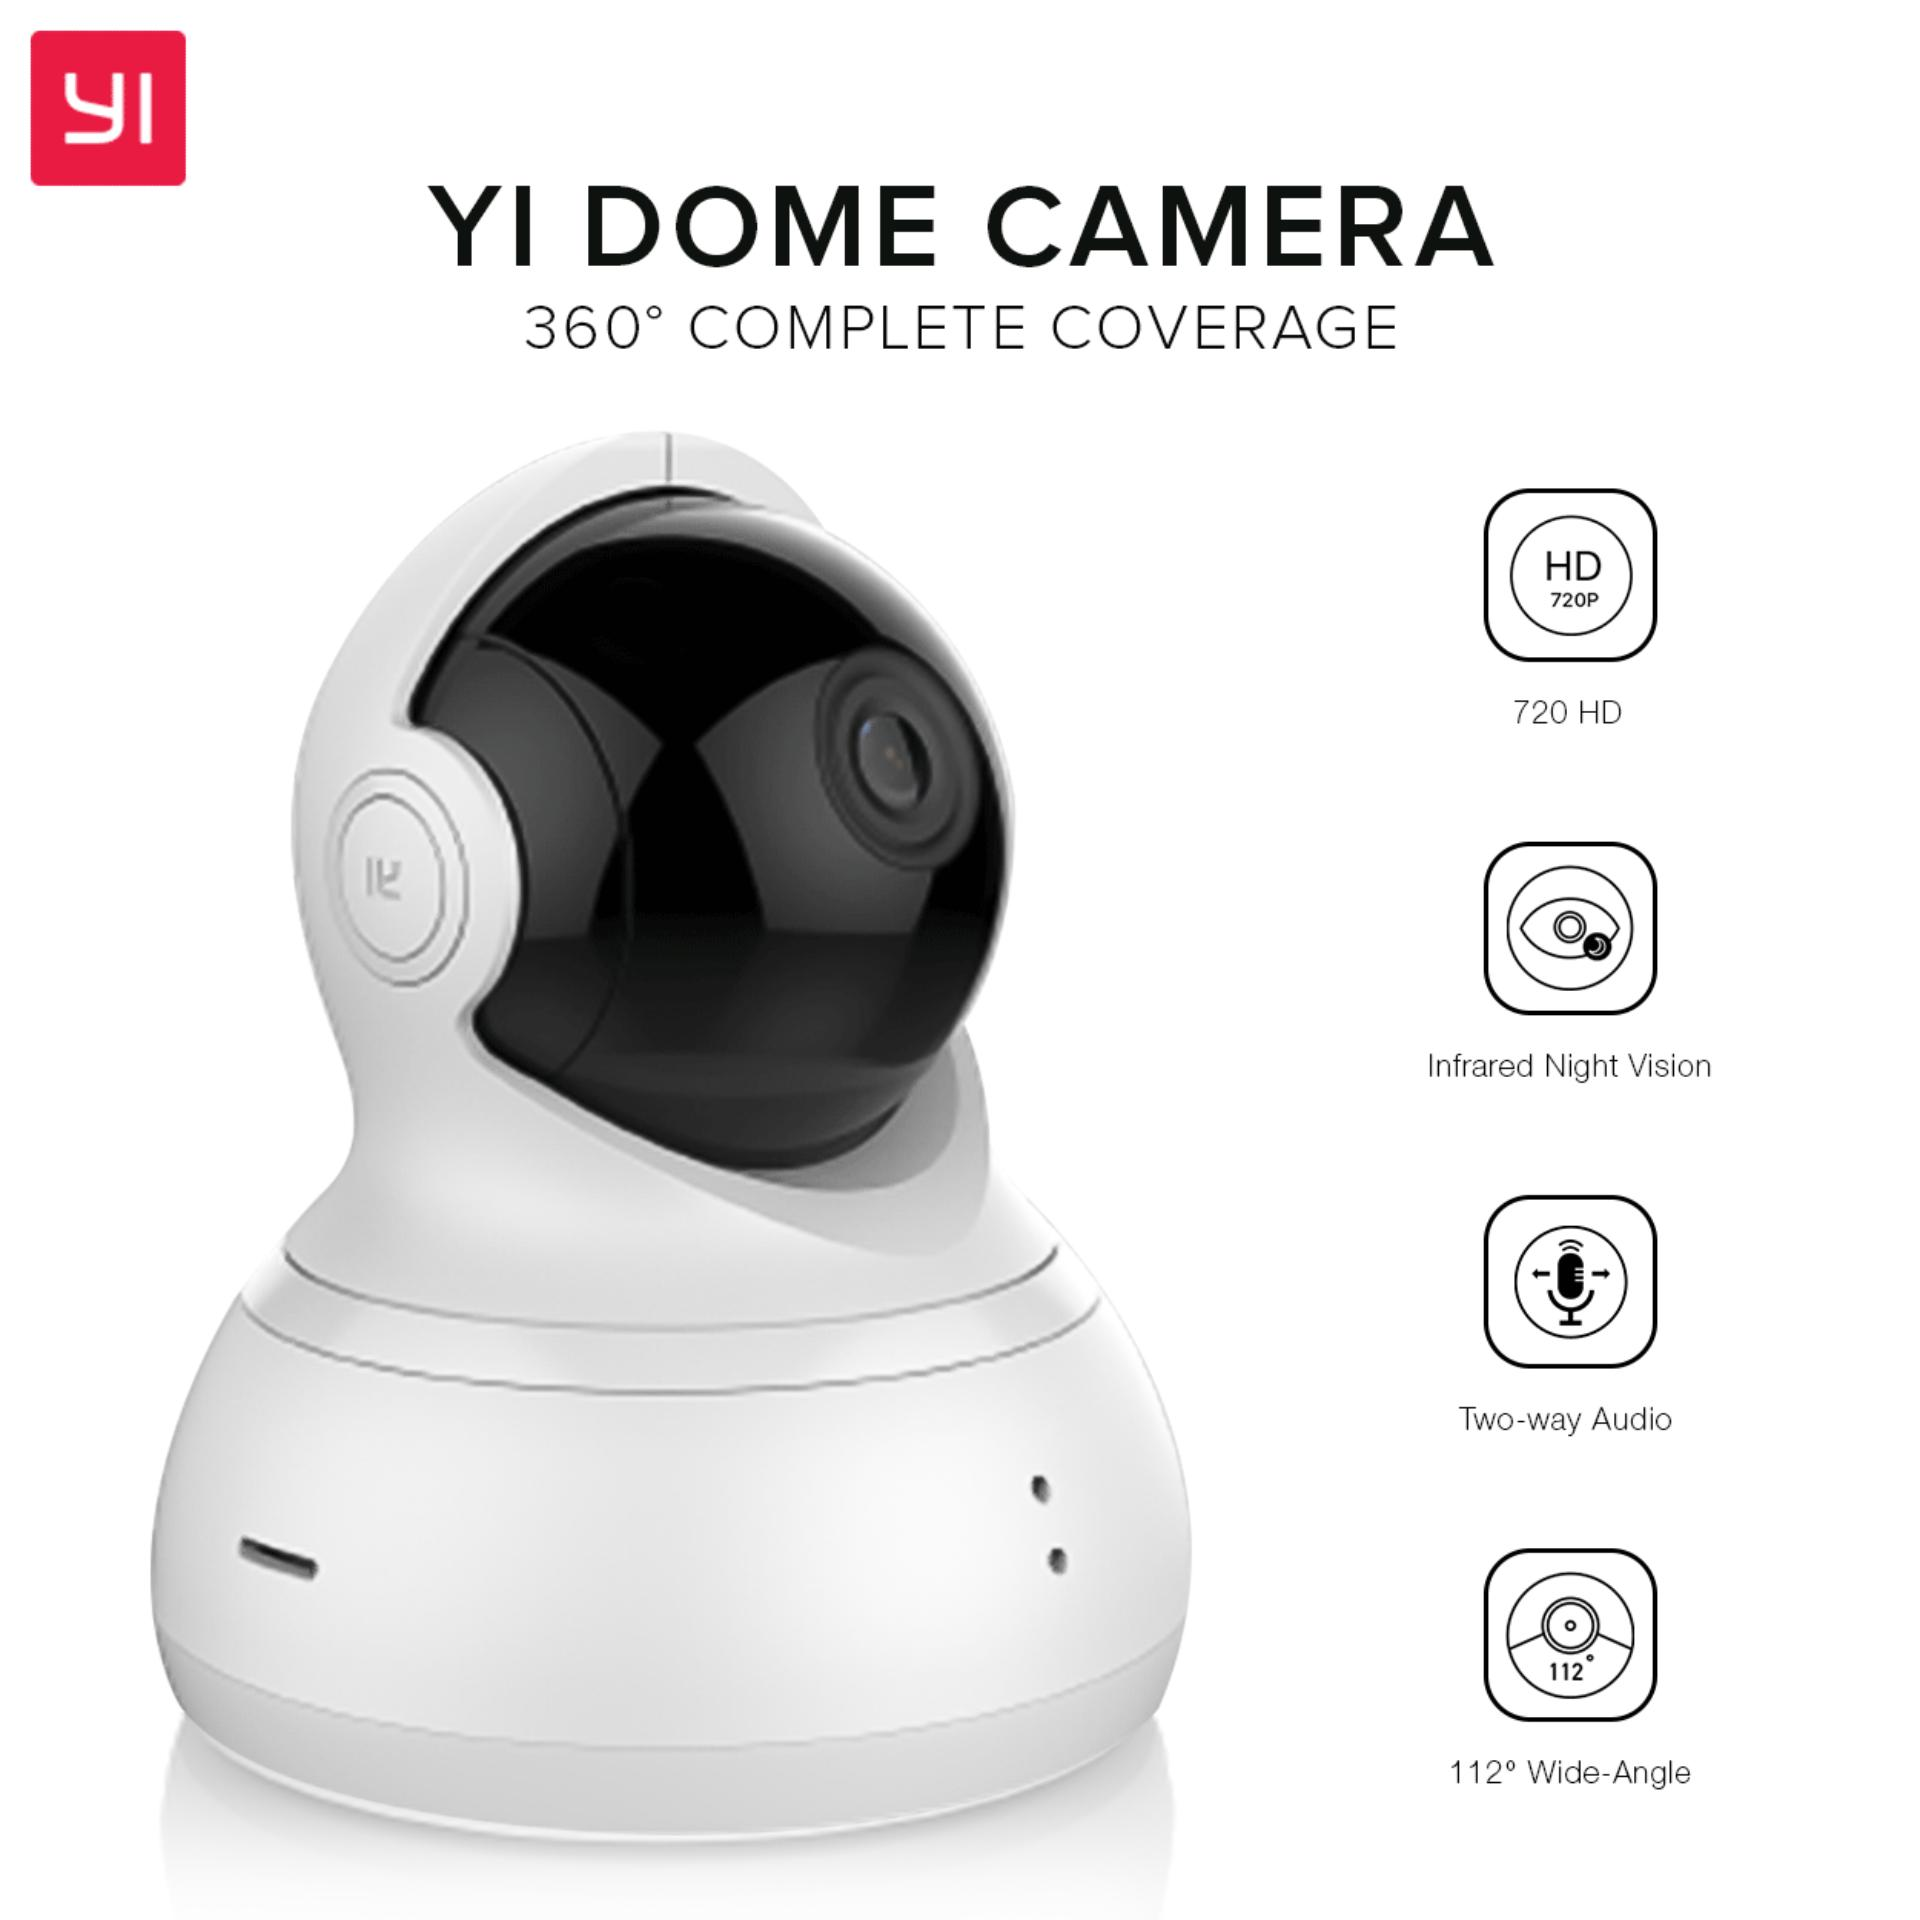 YI 360 Degrees Dome Home Smart Security Camera CCTV System (White) with  Discount Voucher